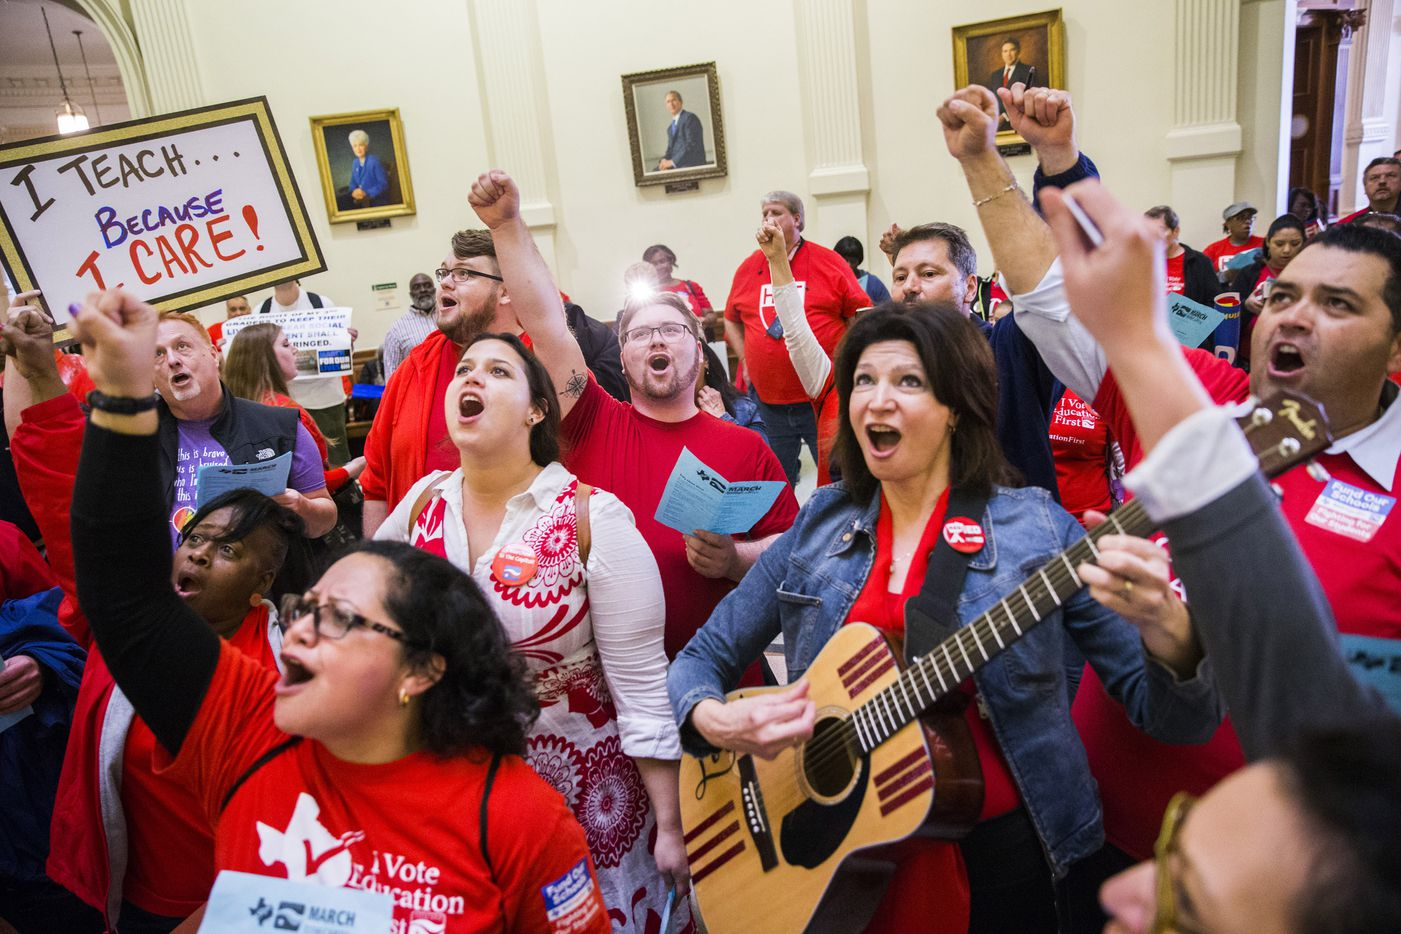 National Education Association president Lily Eskelsen García (with guitar) leads a song in the rotunda during the Texas Public Education Rally on Monday, March 11, 2019 at the Texas capitol in Austin. Teachers pushed for school finance reform and pay raises.